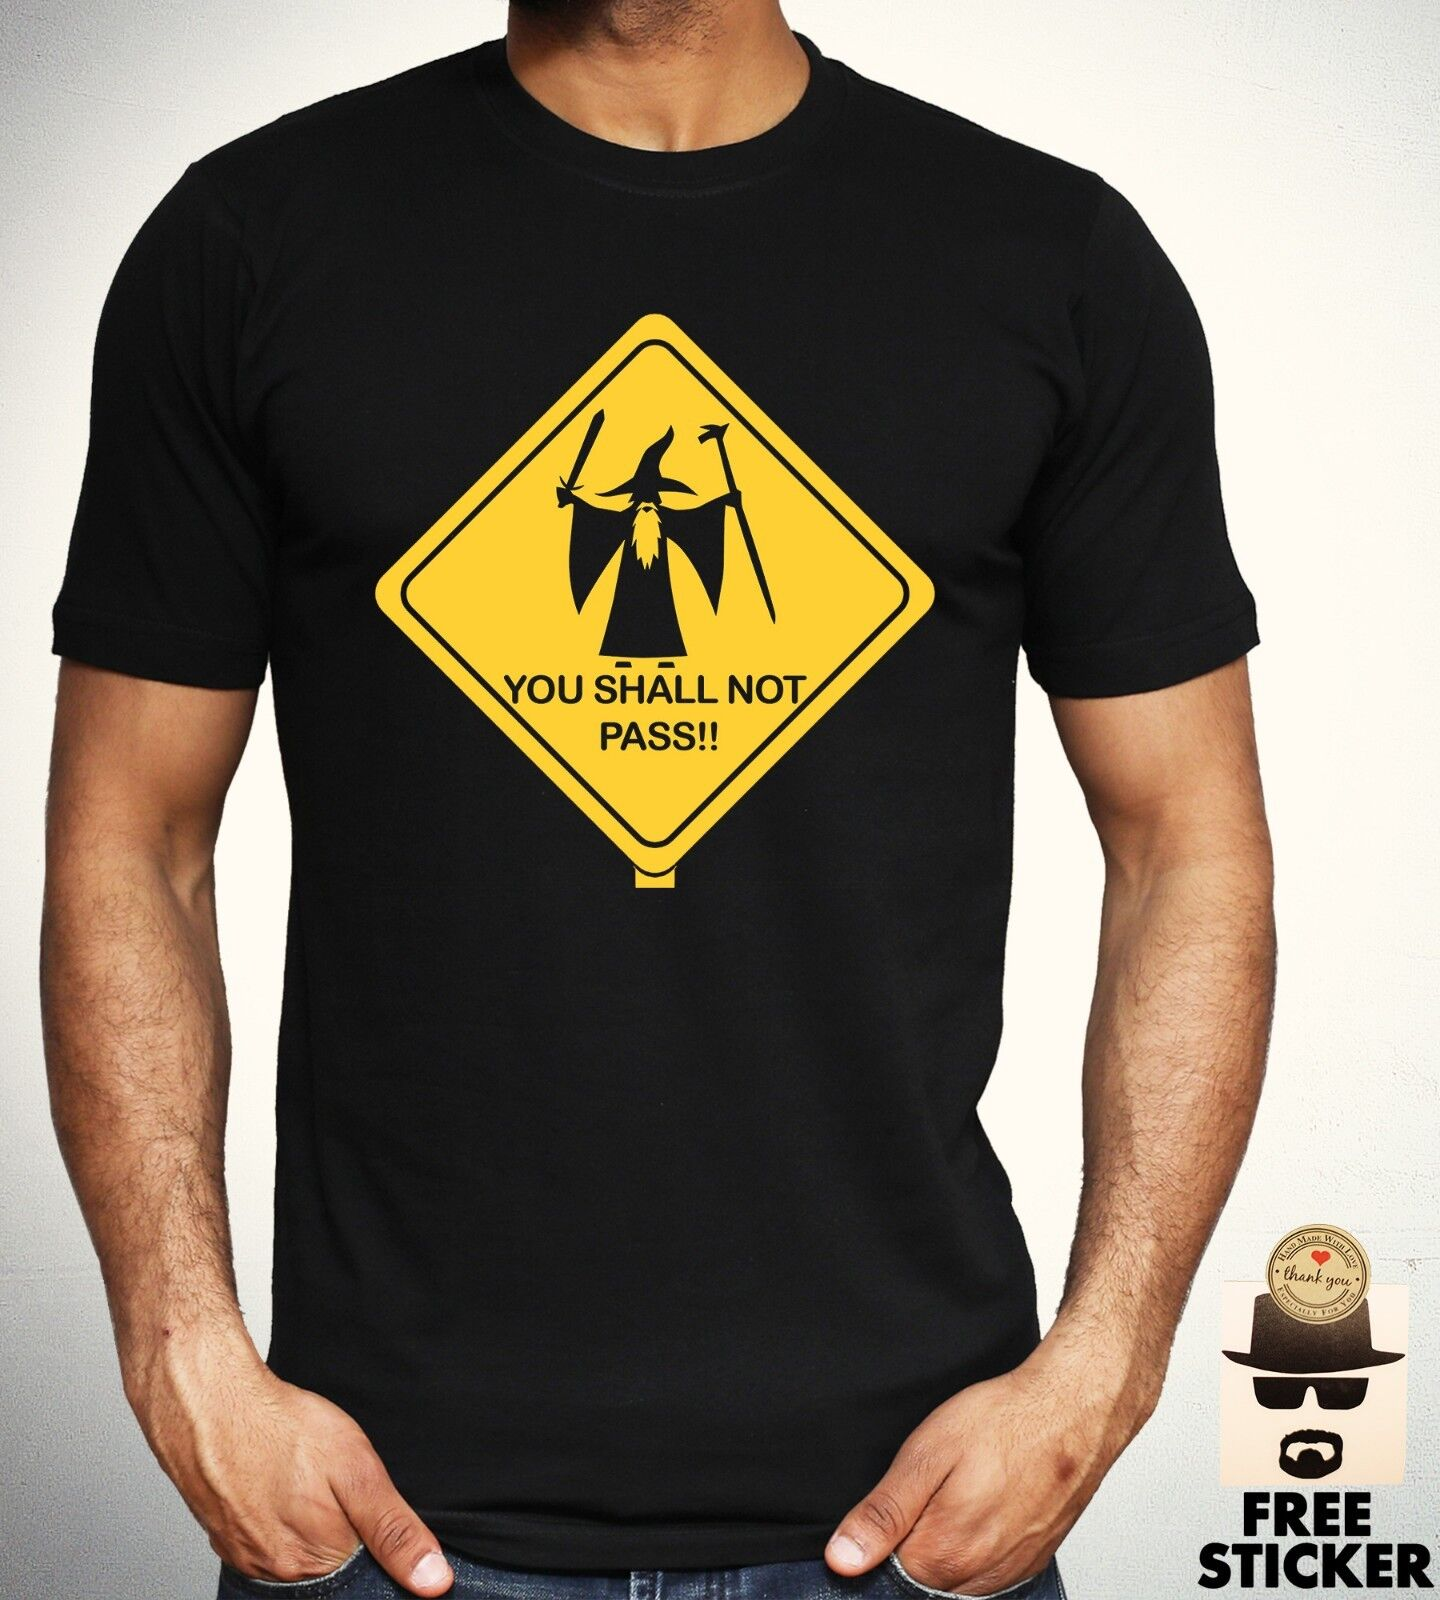 Bag End Brew Lord Of The Rings Comedy Drinking T-Shirt Men/'s T-Shirts